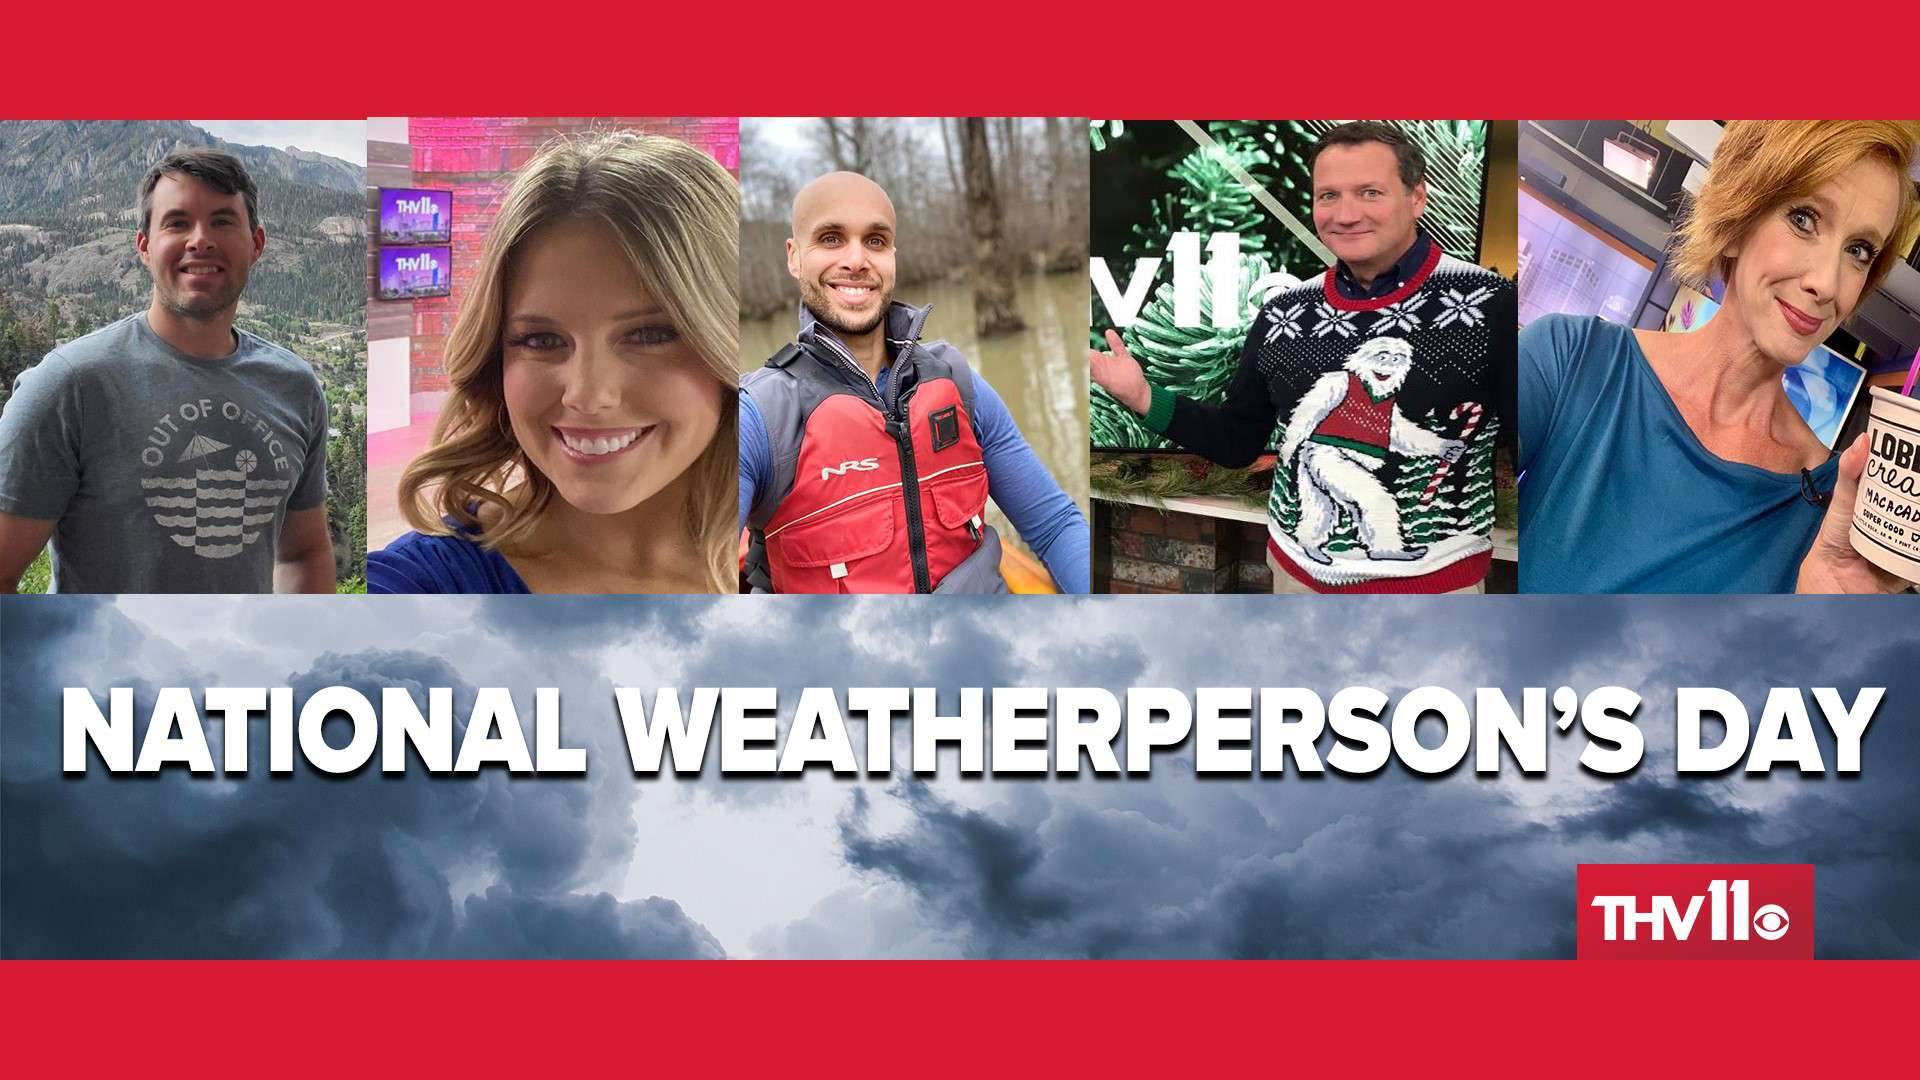 National Weatherperson's Day Wishes Beautiful Image